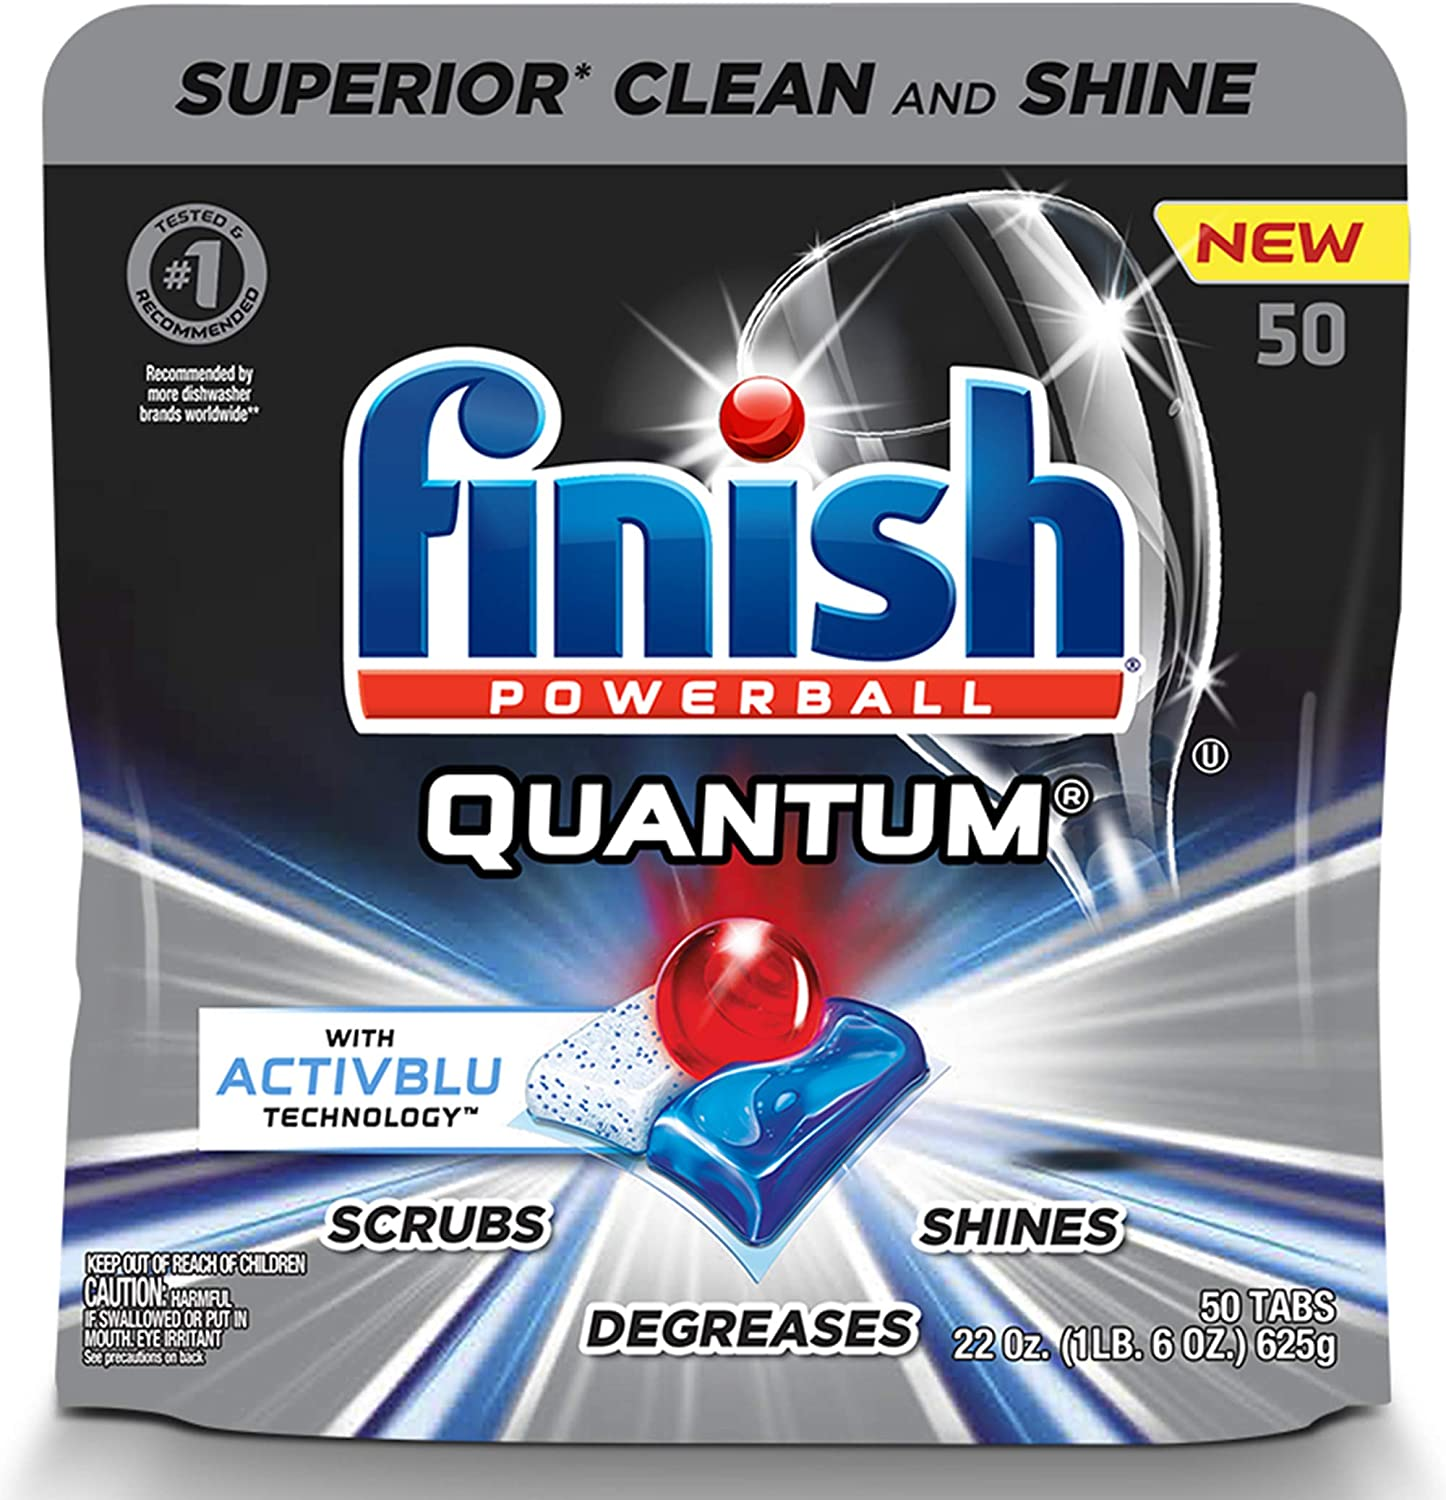 Finish - Quantum with Activblu Technology - 50ct - Dishwasher Detergent - Powerball - Ultimate Clean and Shine - Dishwashing Tablets - Dish Tabs